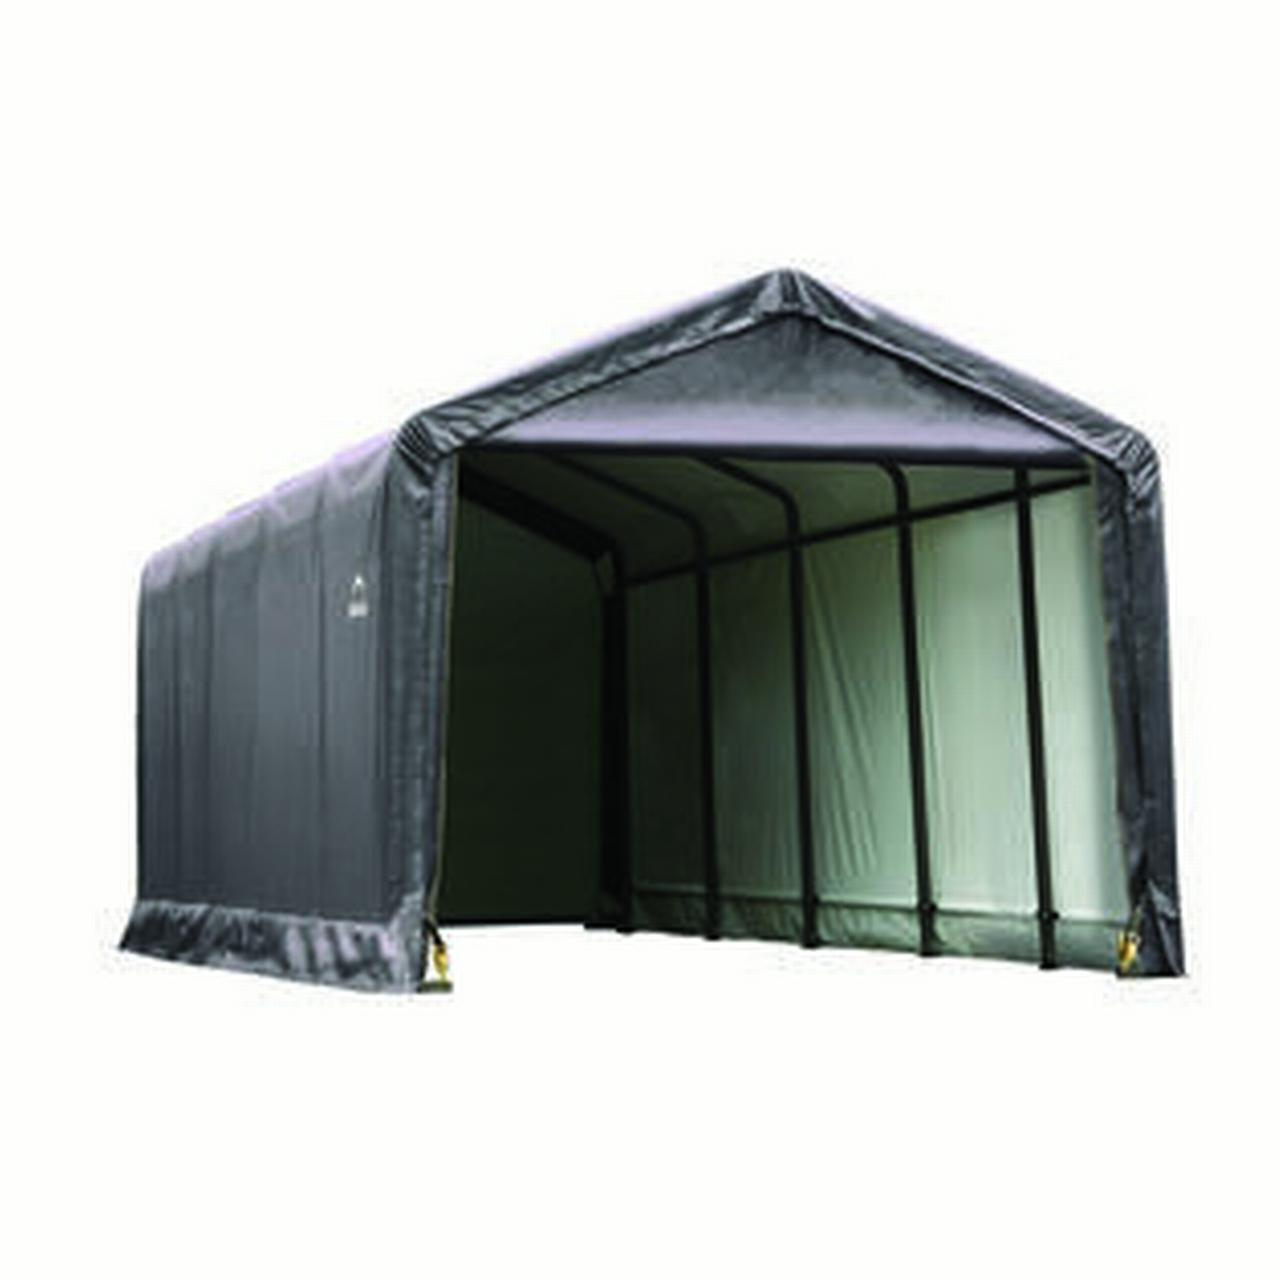 Shelter Tube Storage shelter 12x25x11 Ft. in Gray Cover by